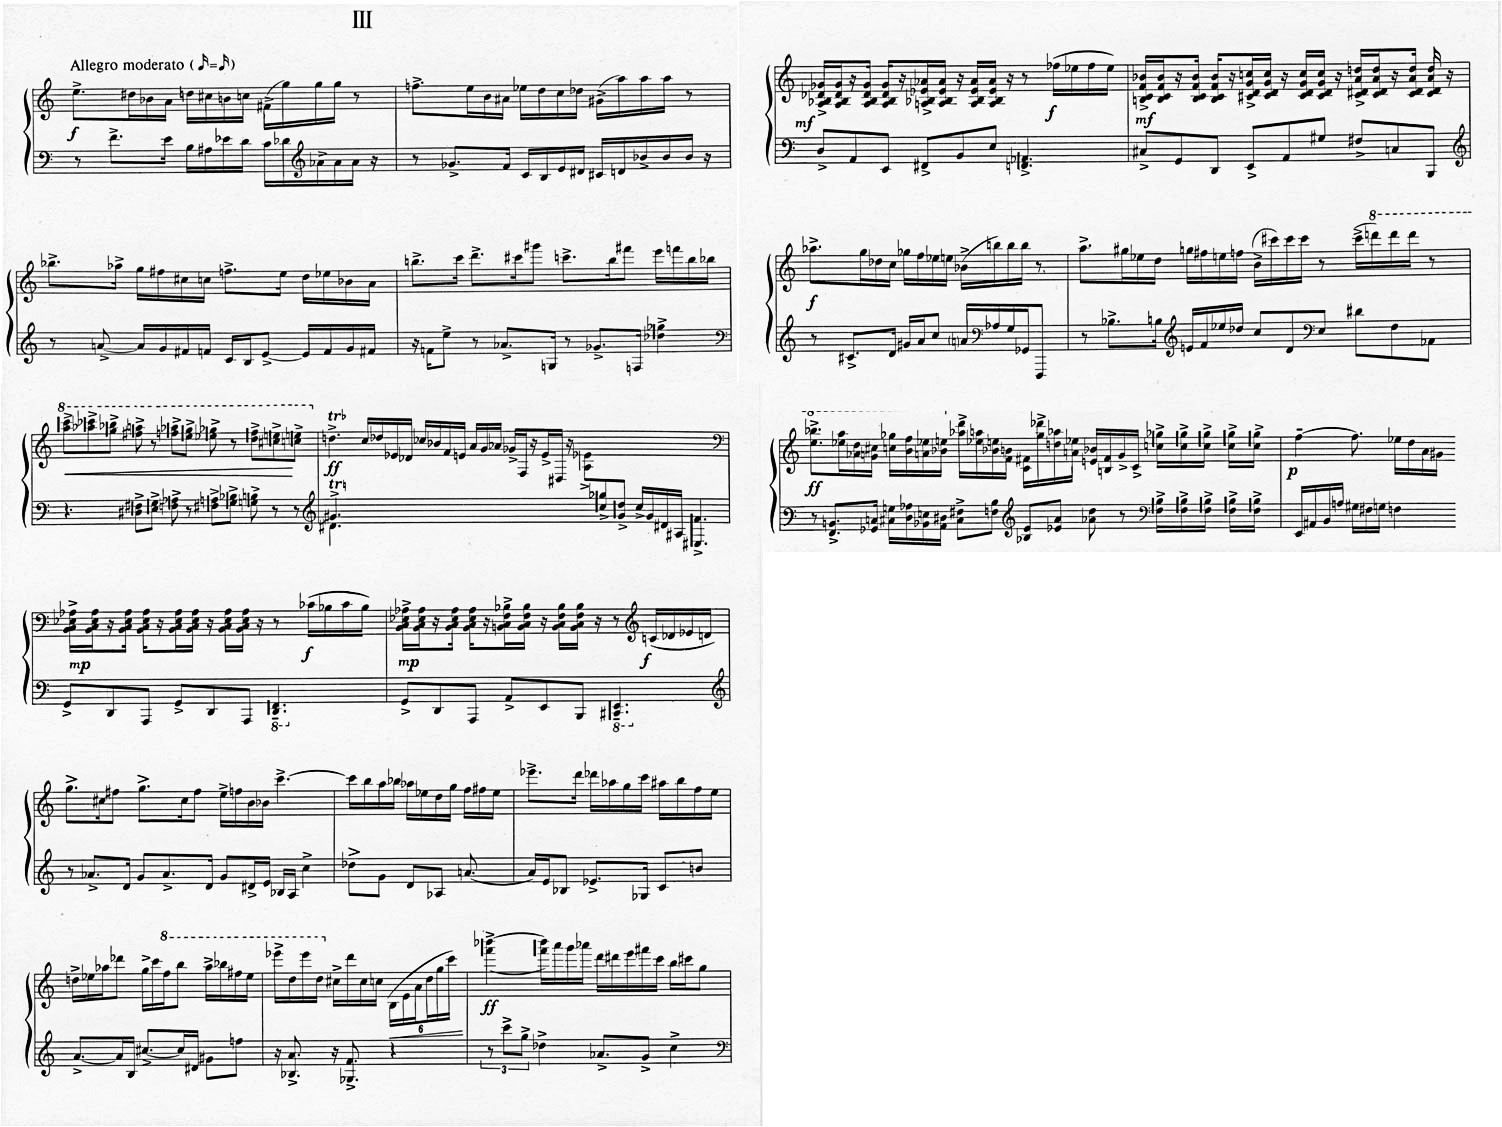 Figure 5: Alfred Schnittke's Piano Sonata No. 2, 3rd movement; 'Allegro moderato', bars 1-19